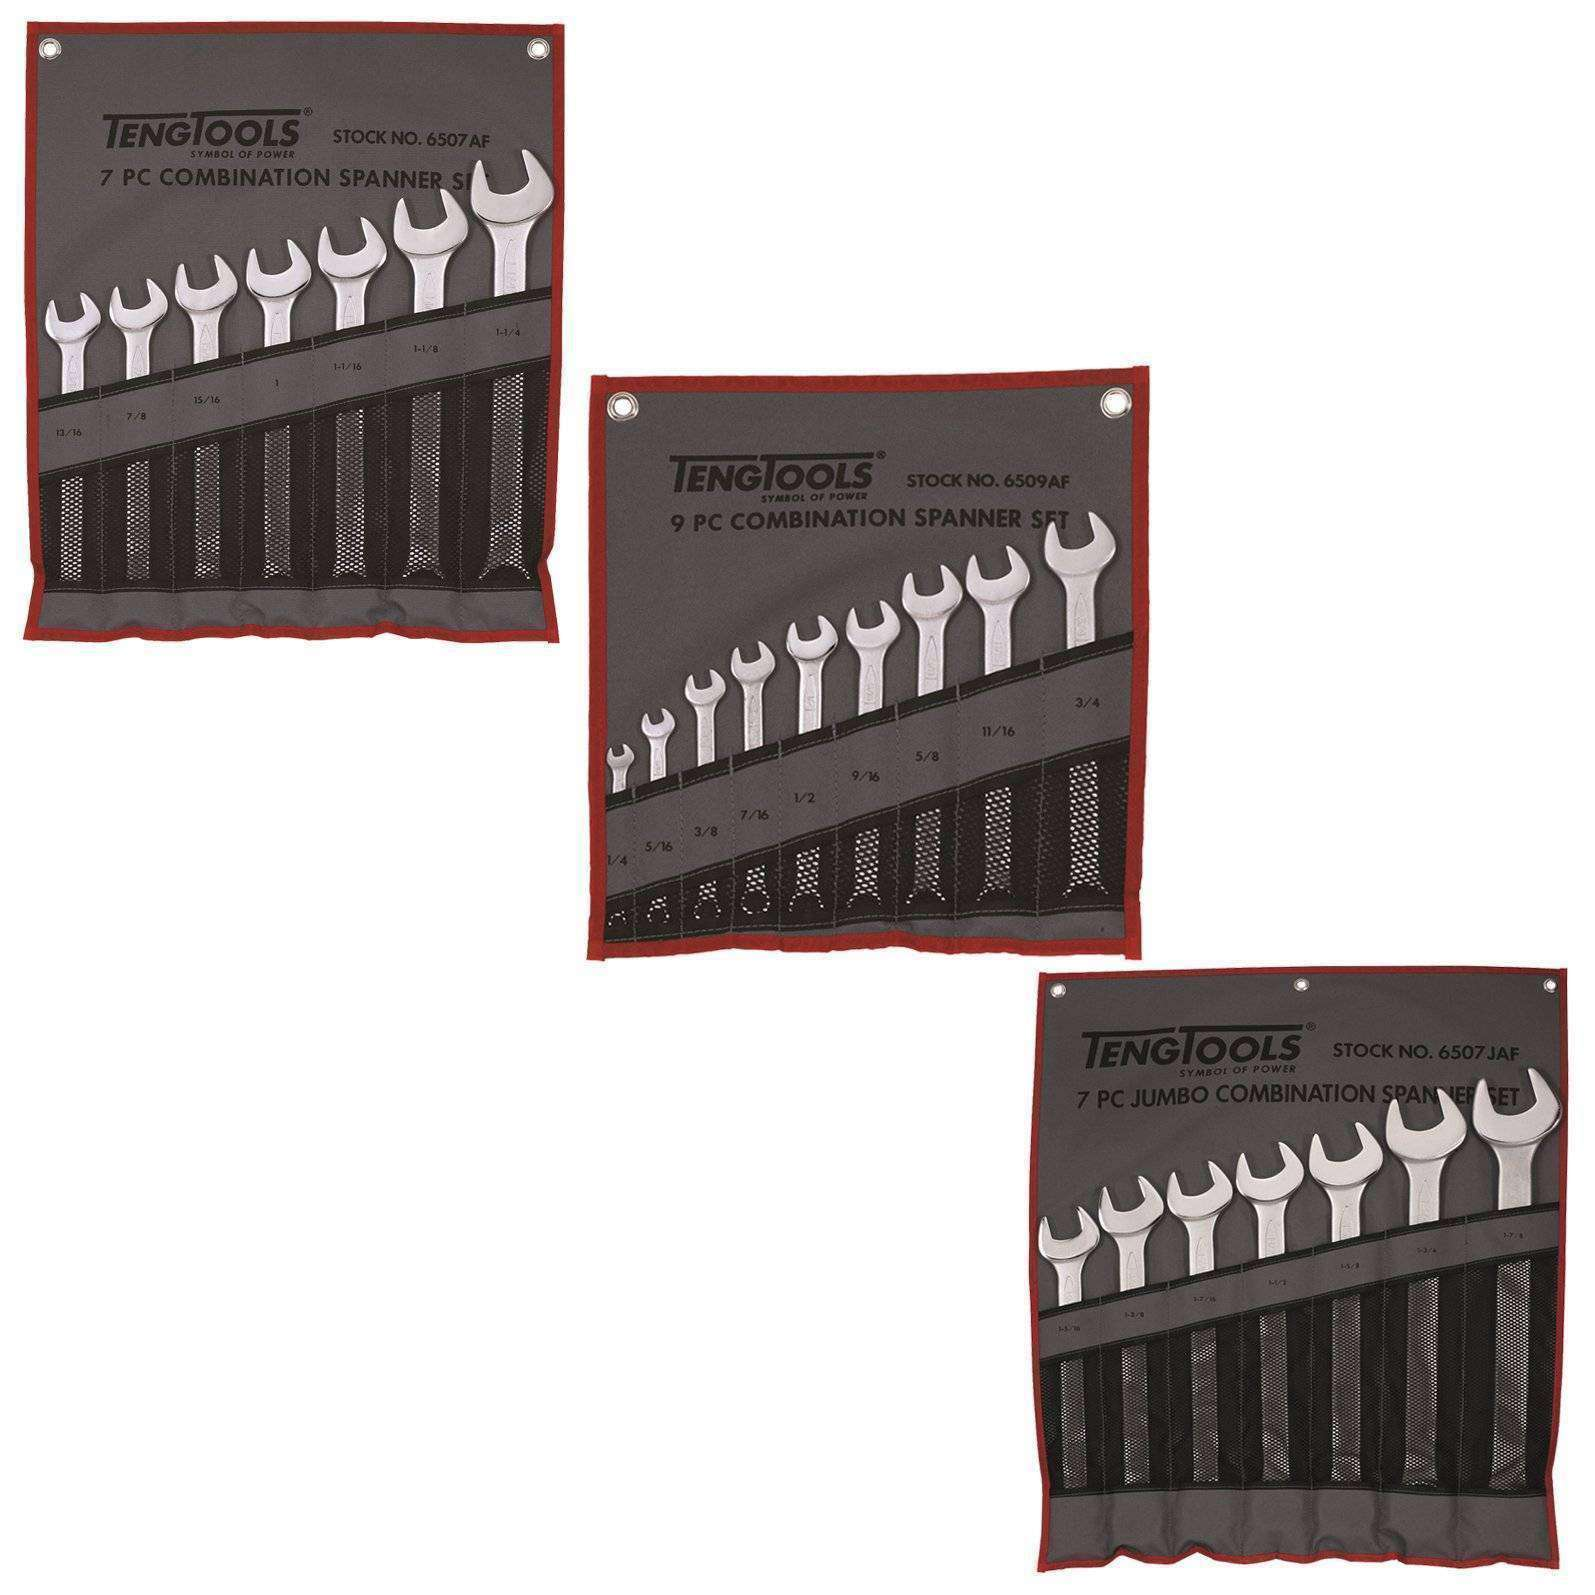 Teng Tools 23 Piece Combination Spanner Set - Teng Tools USA